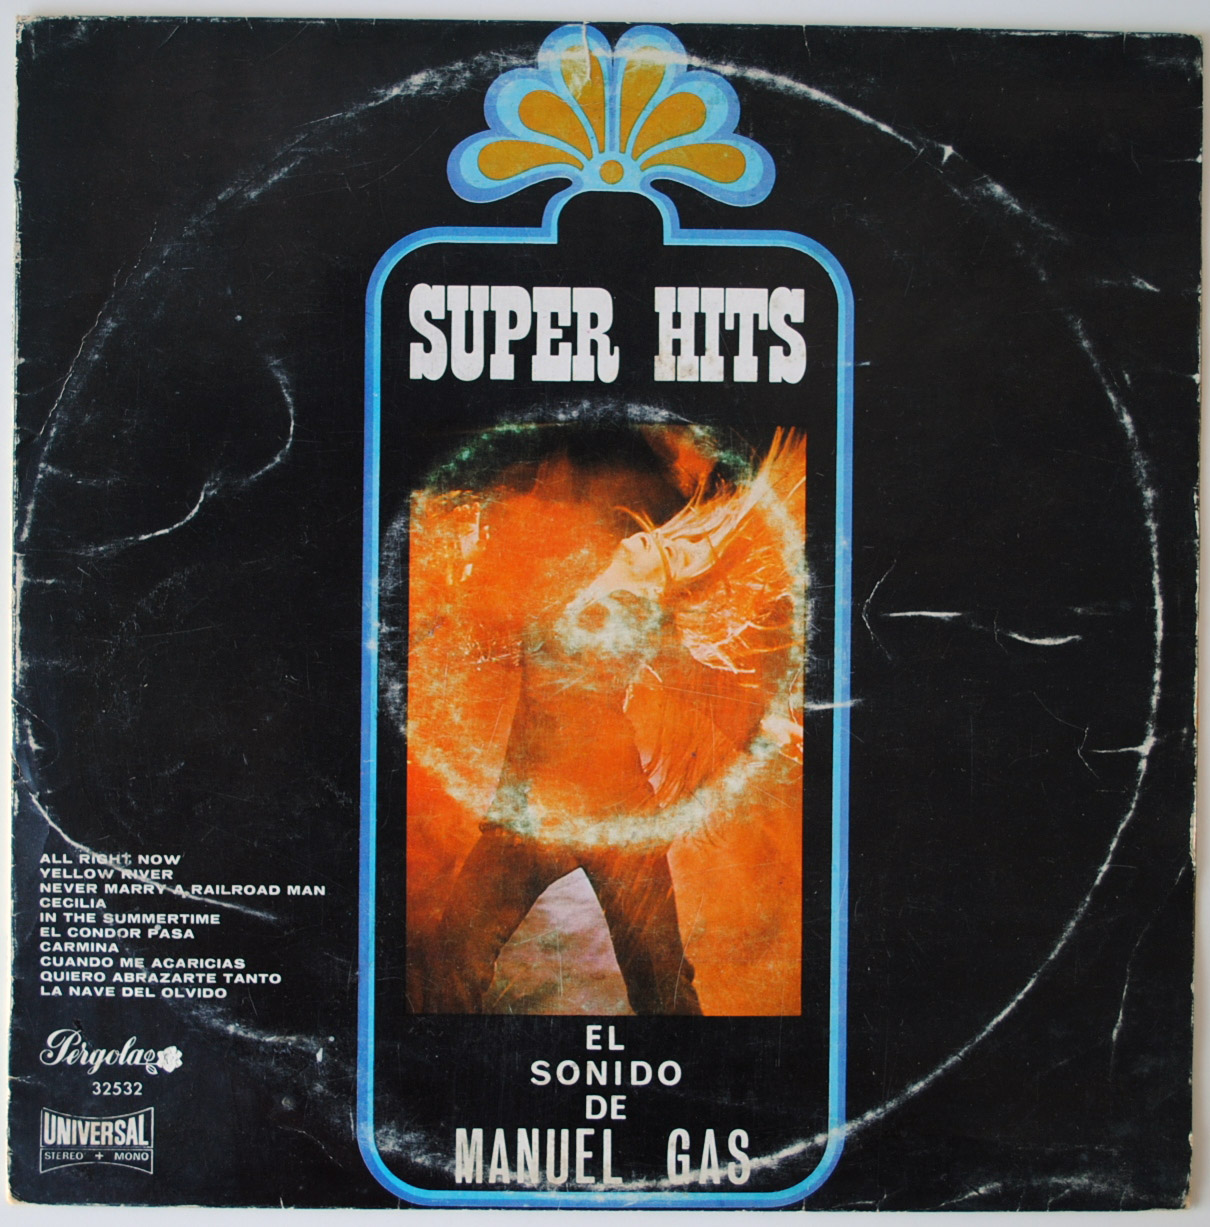 Manolo Gas super hits